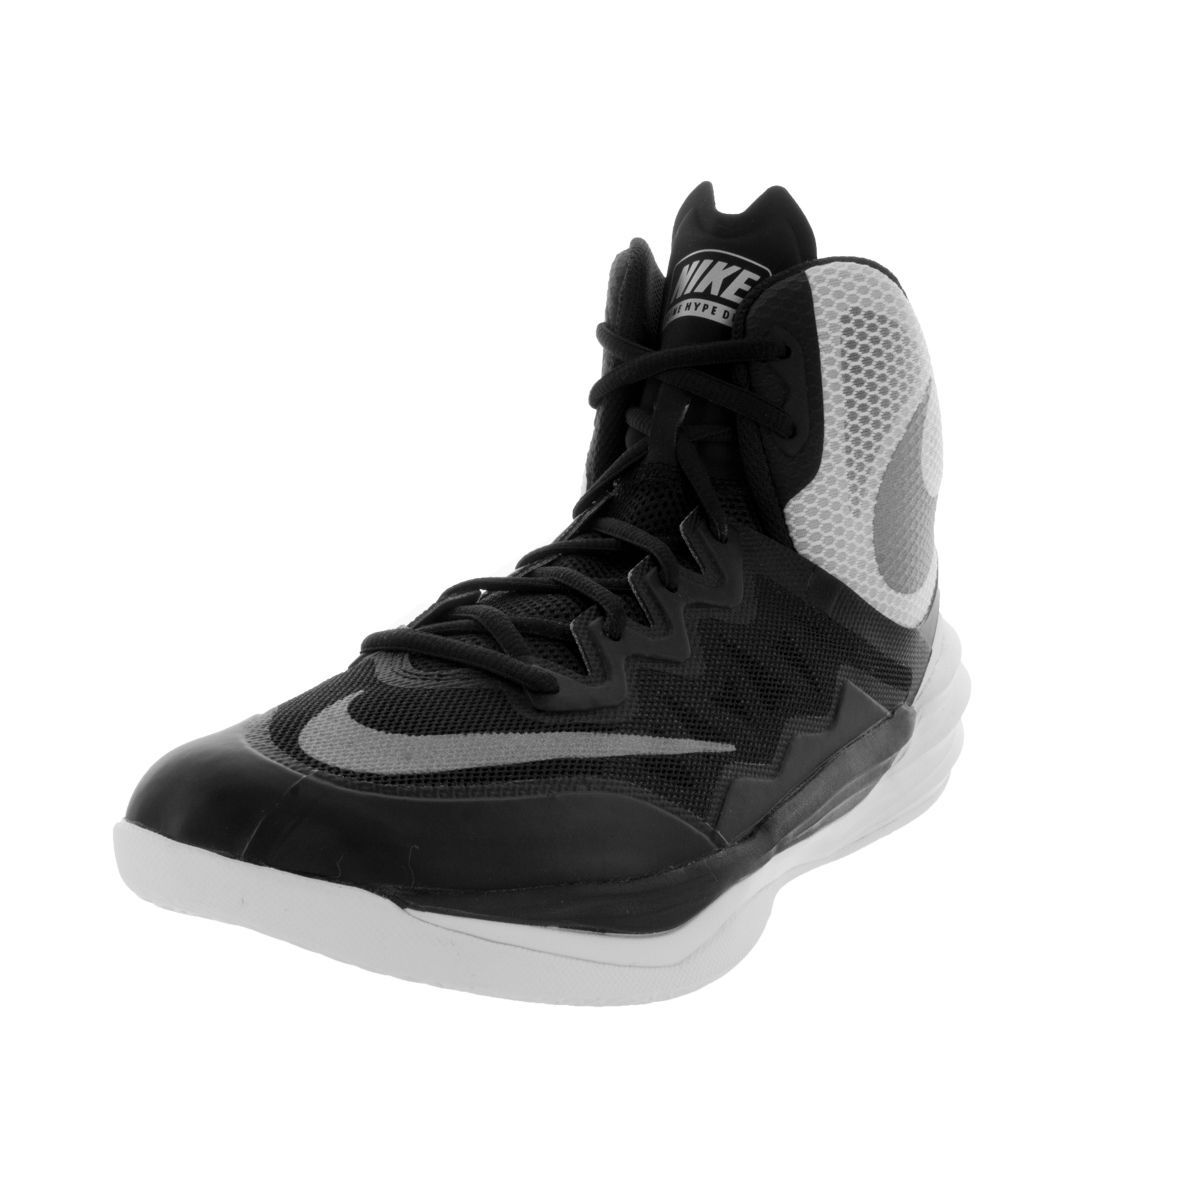 new arrival 3b4e0 5eda1 Nike Men s Prime Hype DF II  Reflecting Silver White Flat Silver Synthetic  Basketball  Shoe